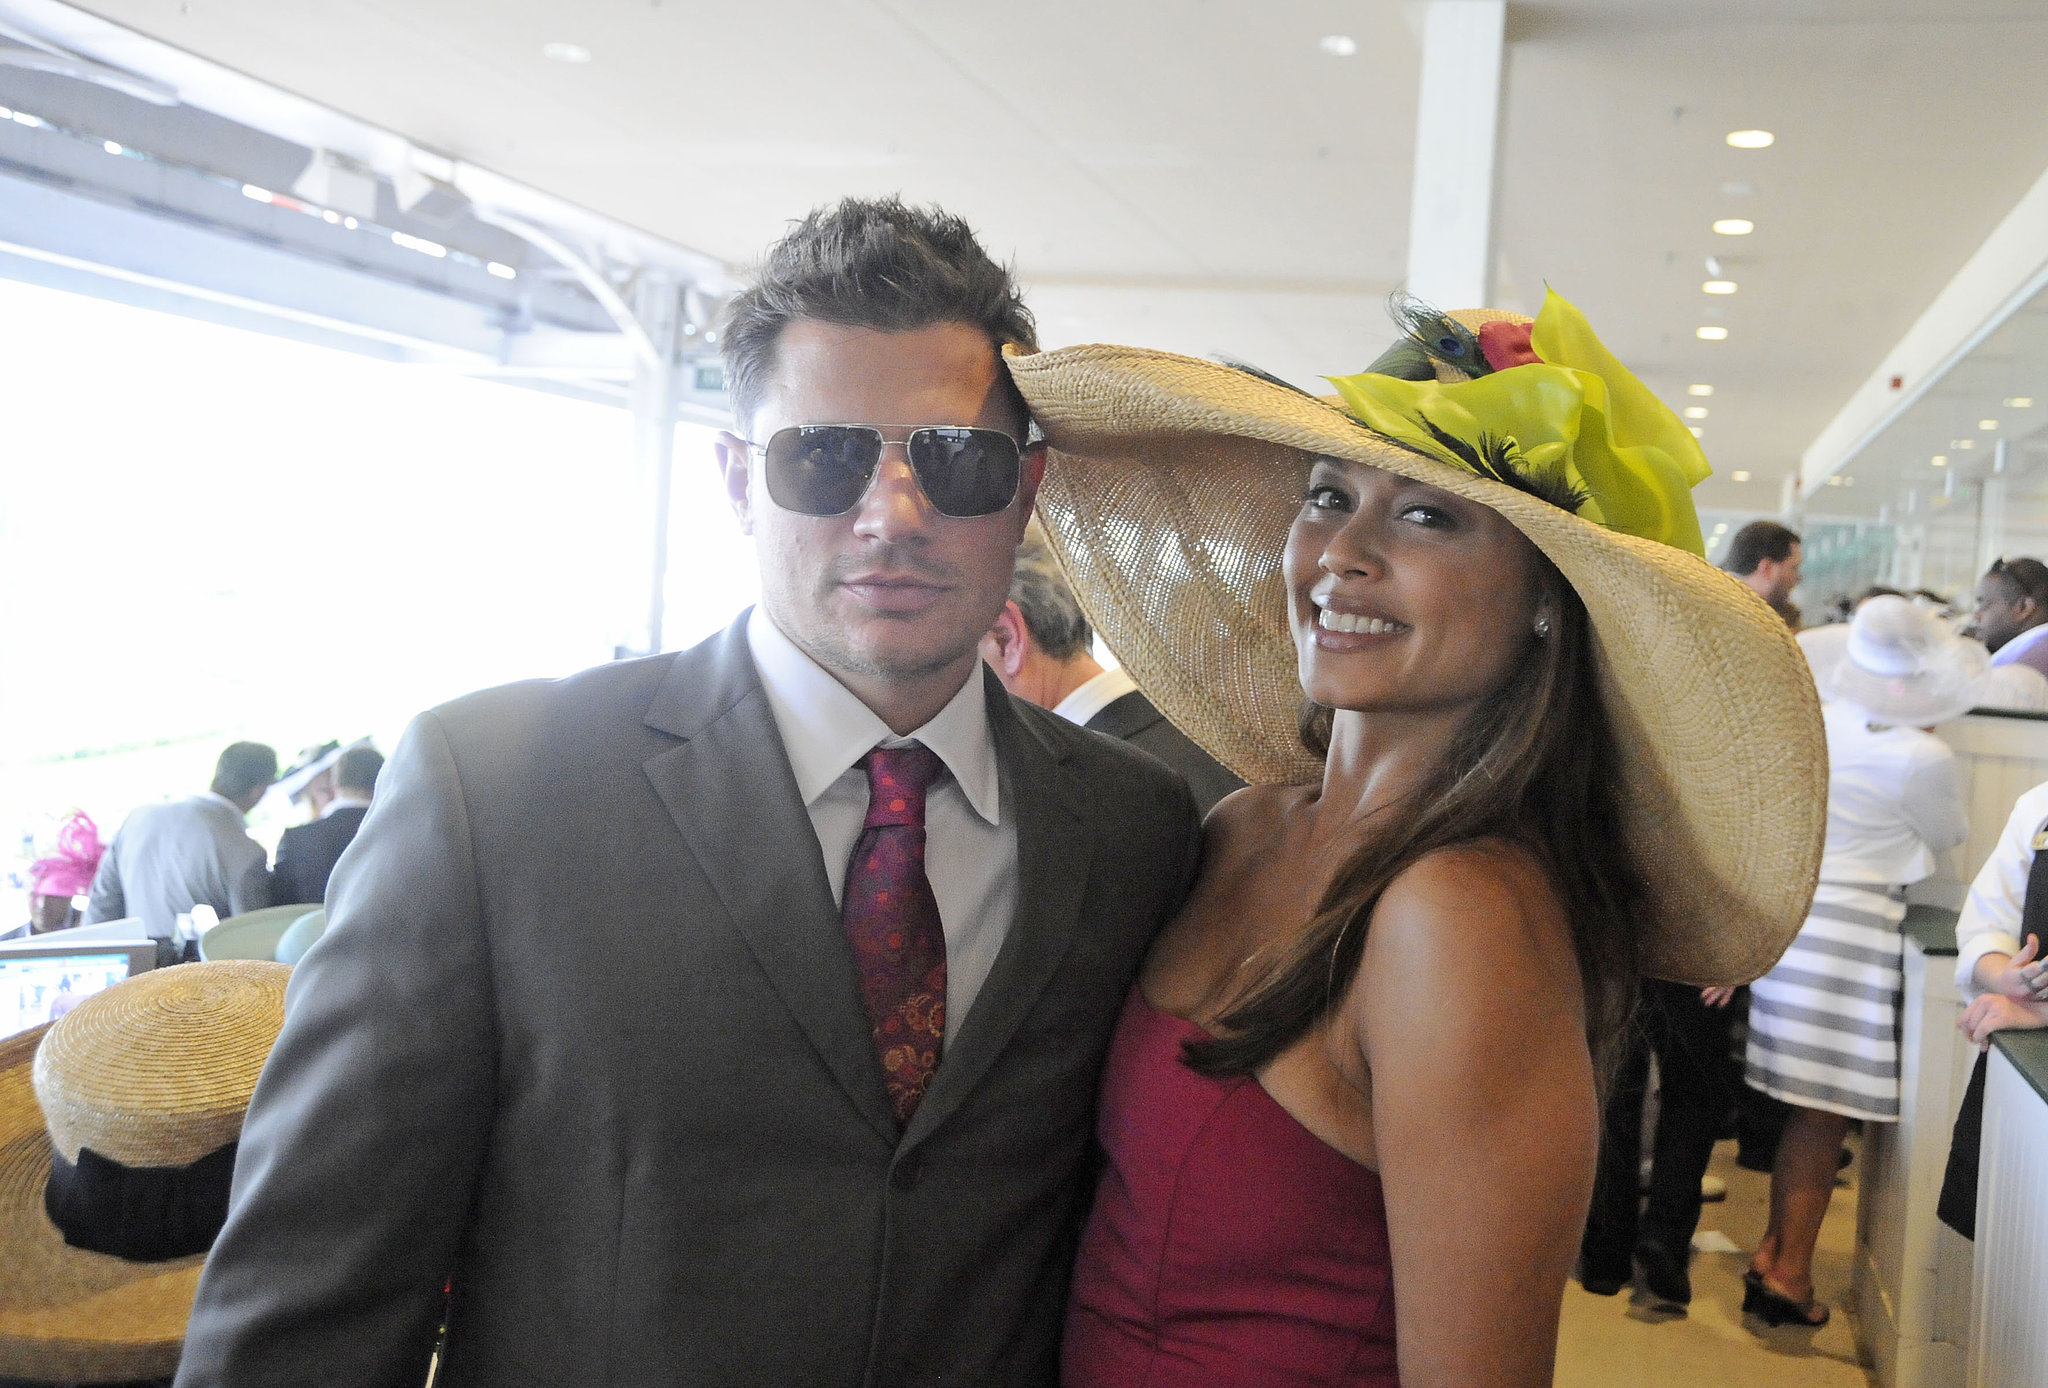 Nick Lachey and Vanessa Minnillo were off to the races in 2010.